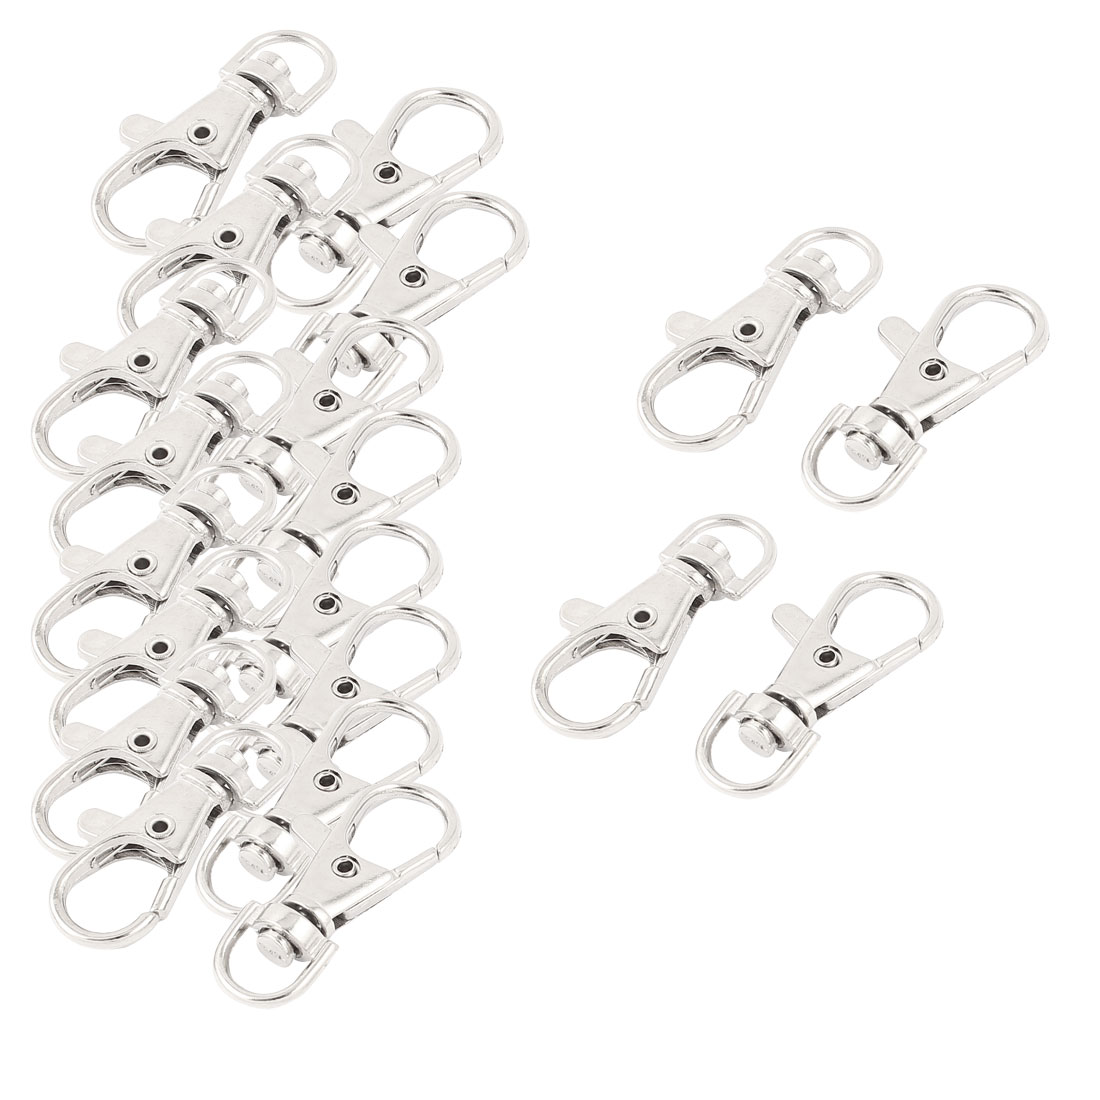 20Pcs Silver Tone Metal Lobster Trigger Swivel Clasp Hooks Clip Buckle Key Ring Chain Keyring Keychain 35mm